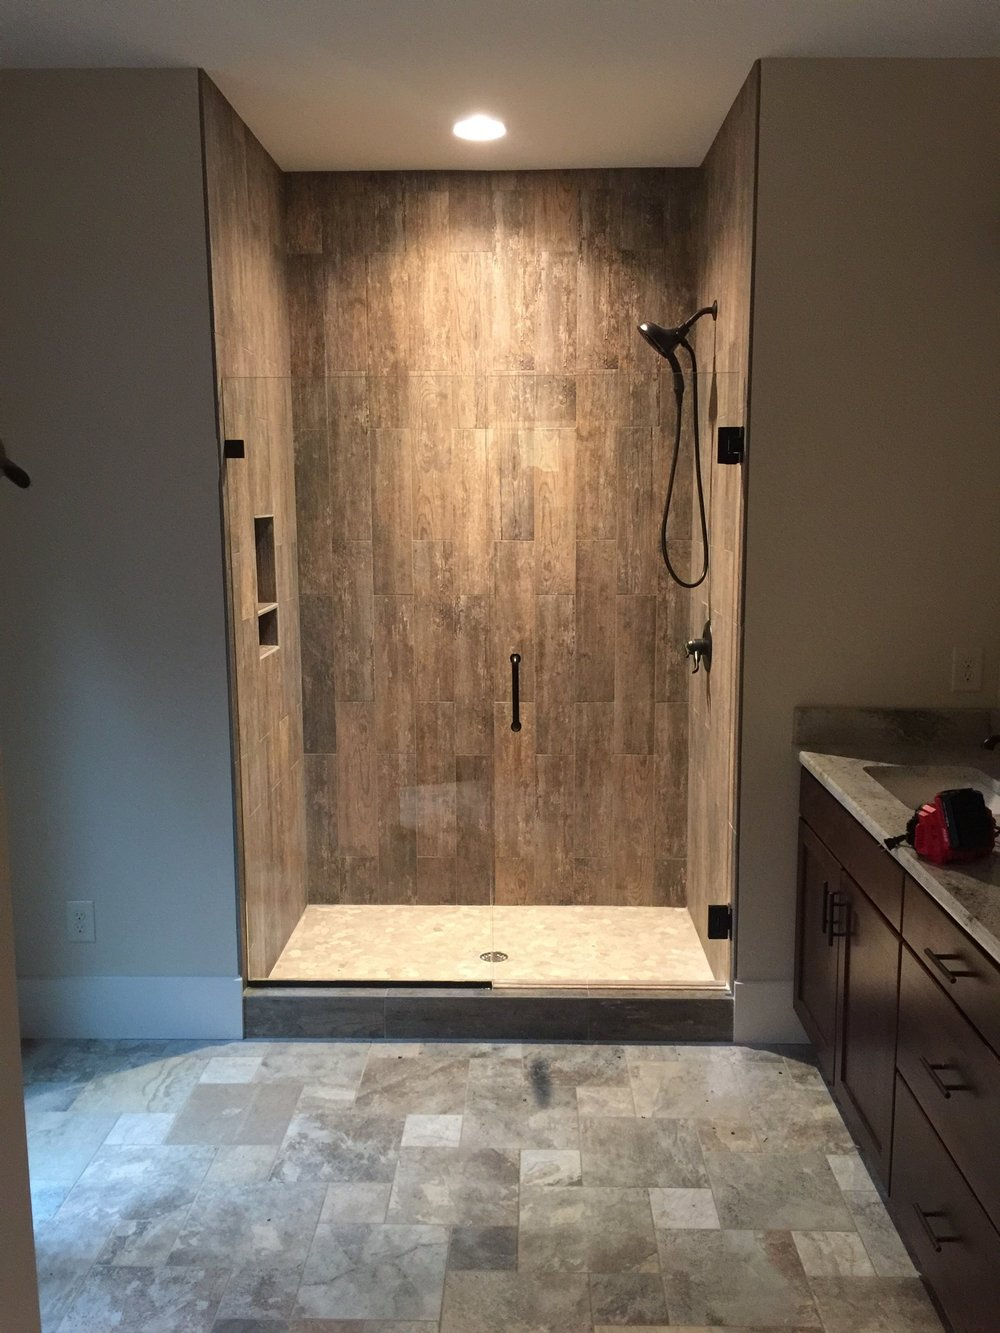 Chase_shower_door_photos-26.jpg